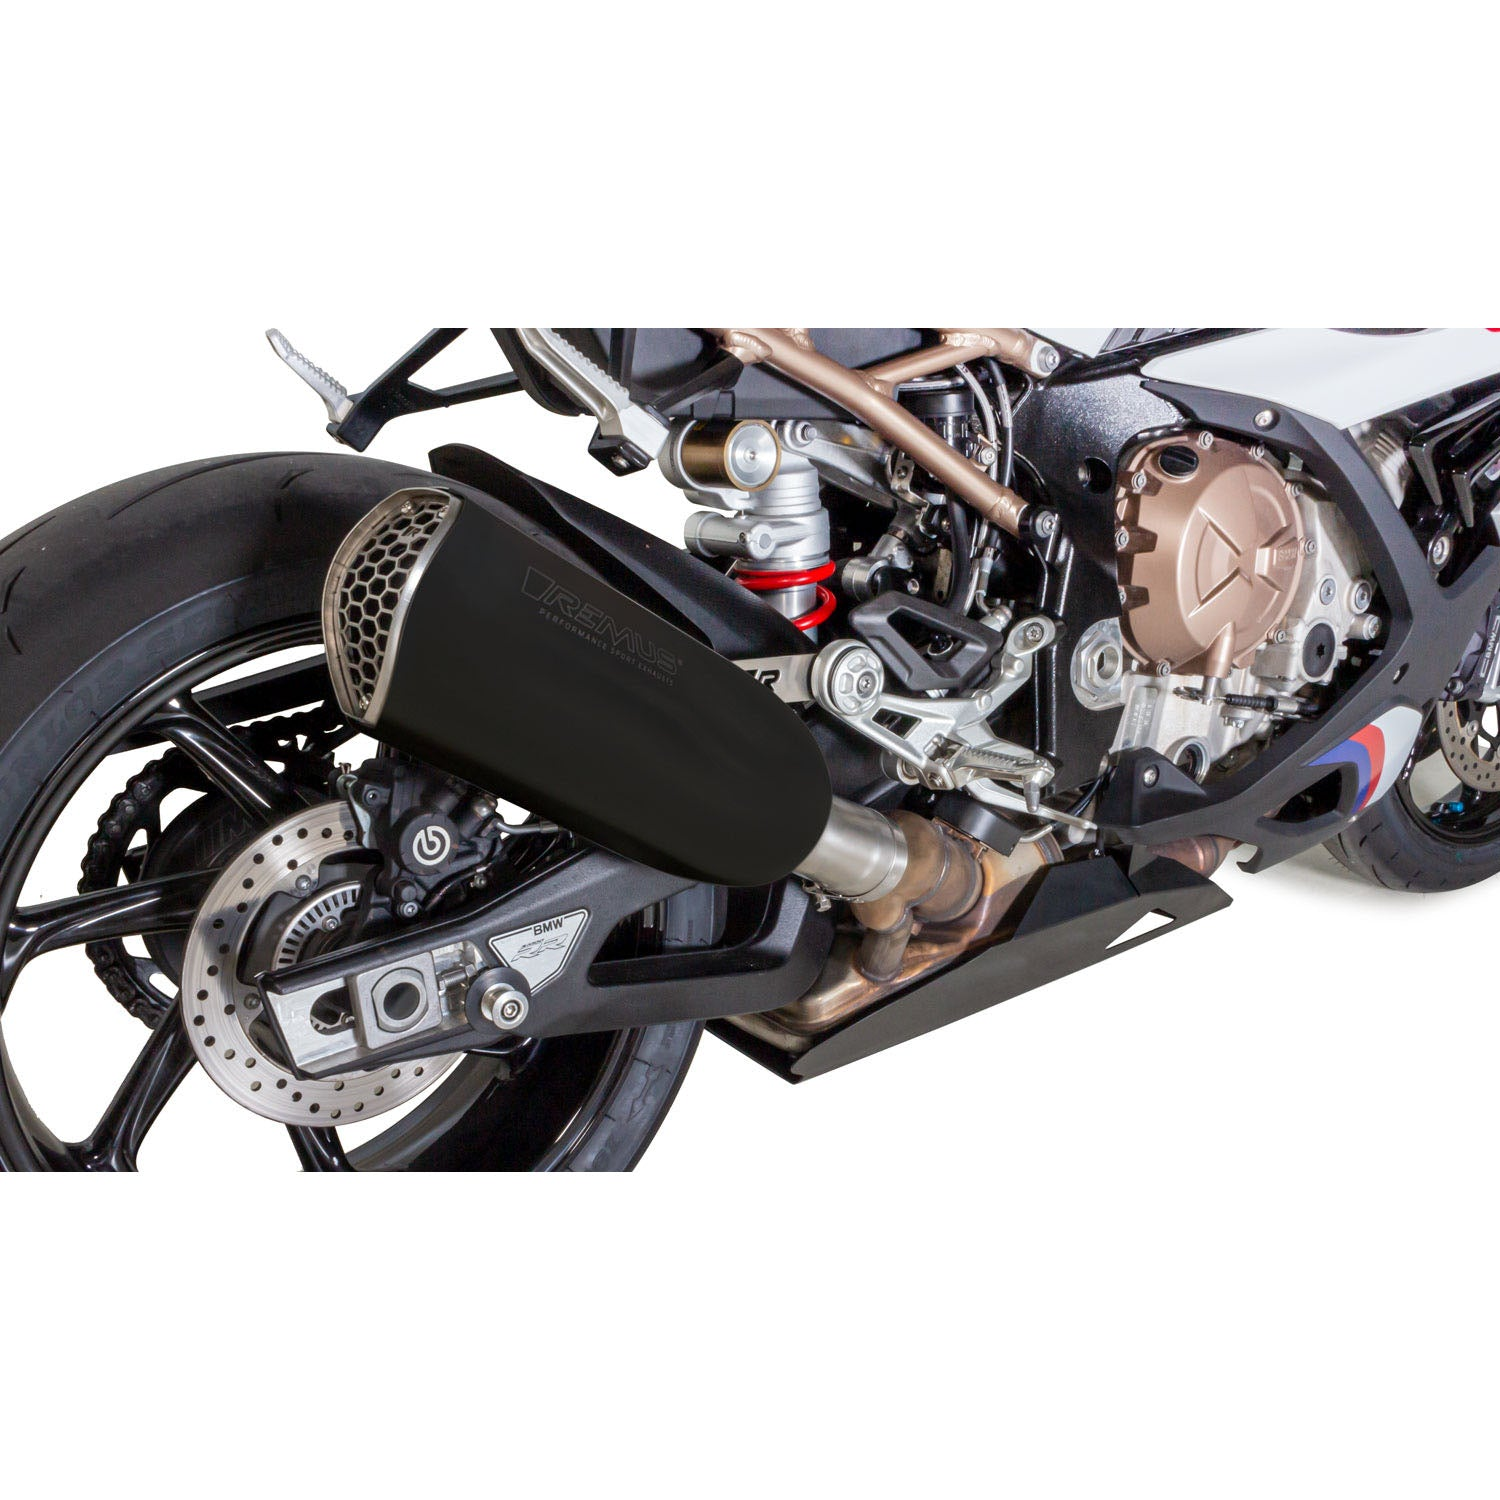 Race NXT SS Black Slip-On, Sound Insert Exhaust - BMW S1000RR 19-20